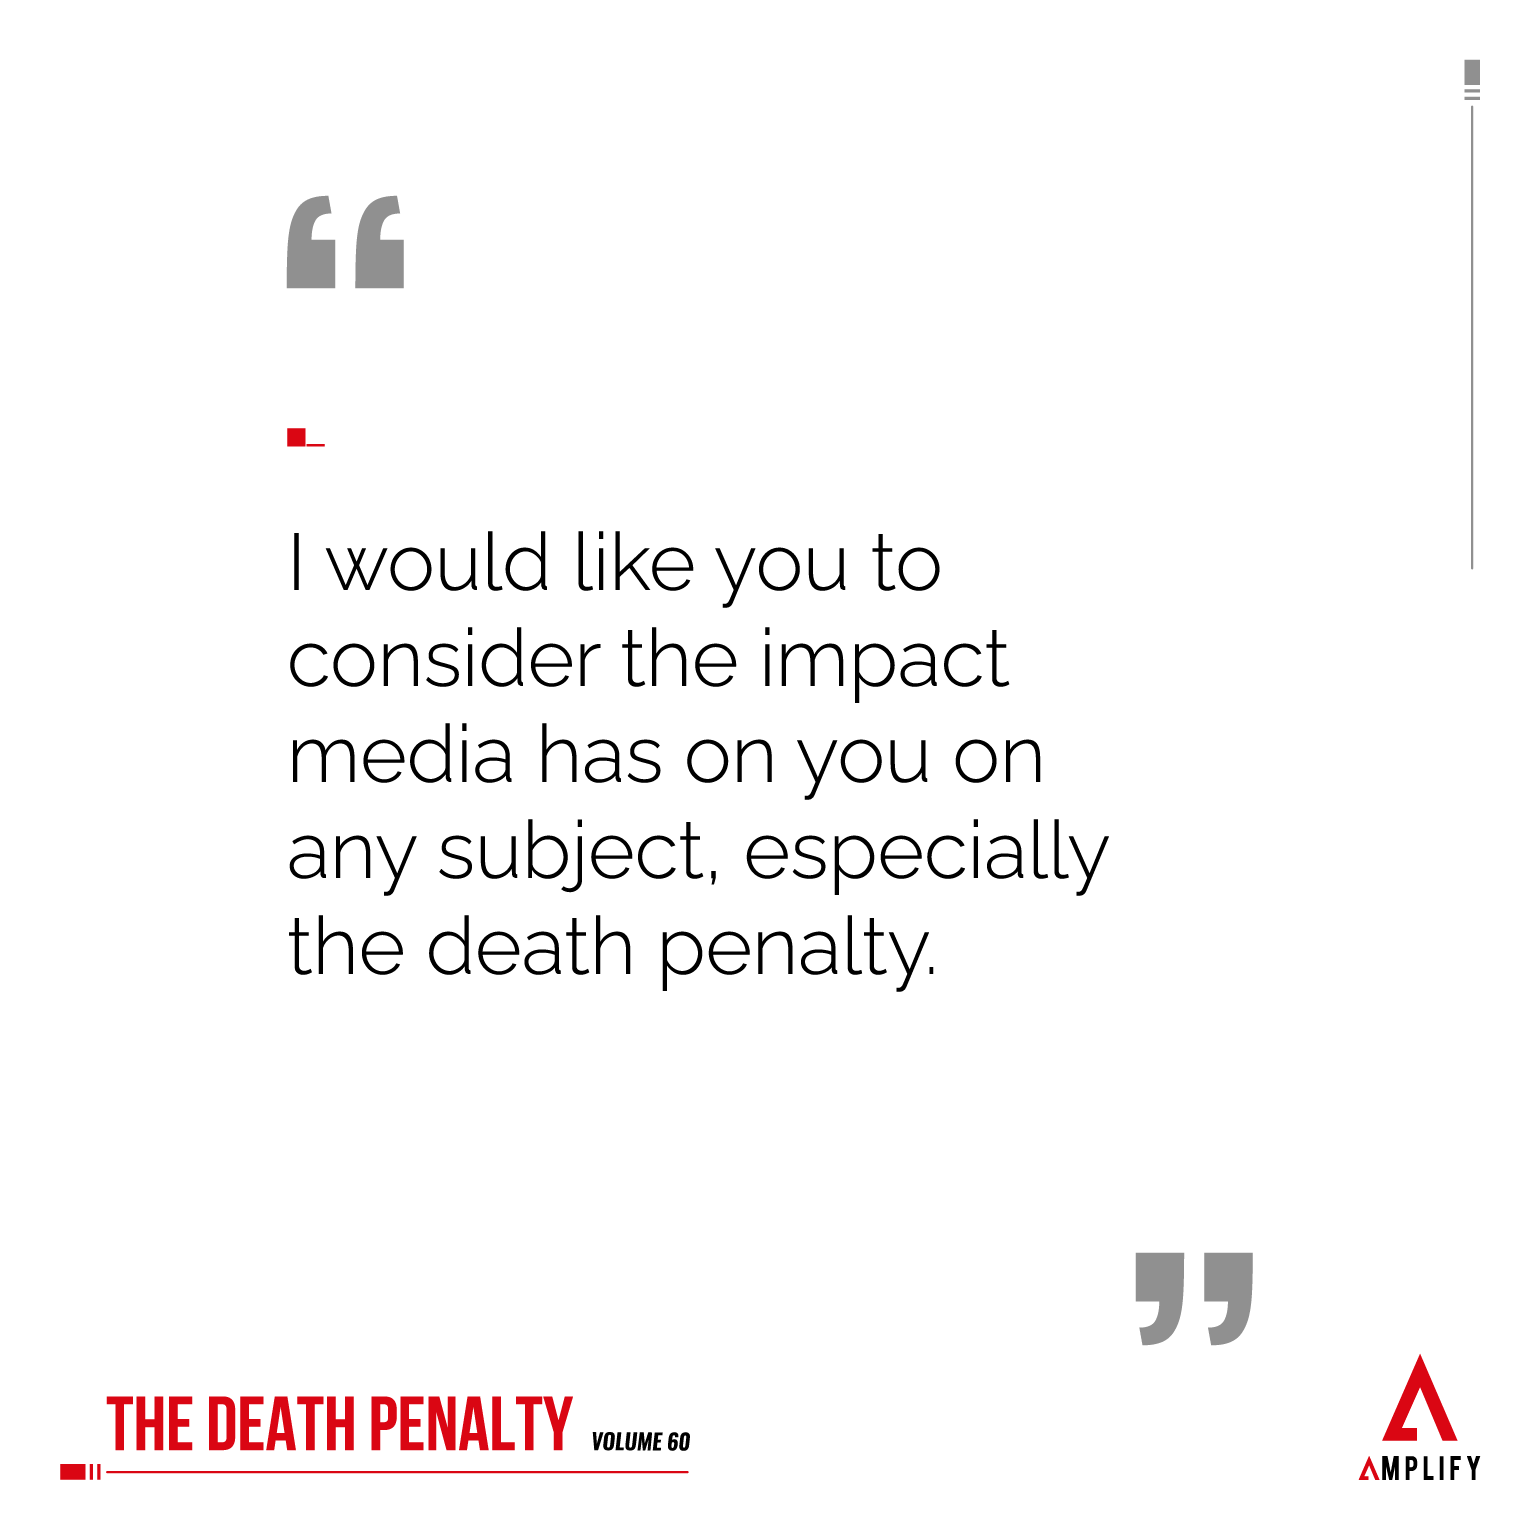 Quote: I would like you to consider the impact media has on you on any subject, especially the death penalty.